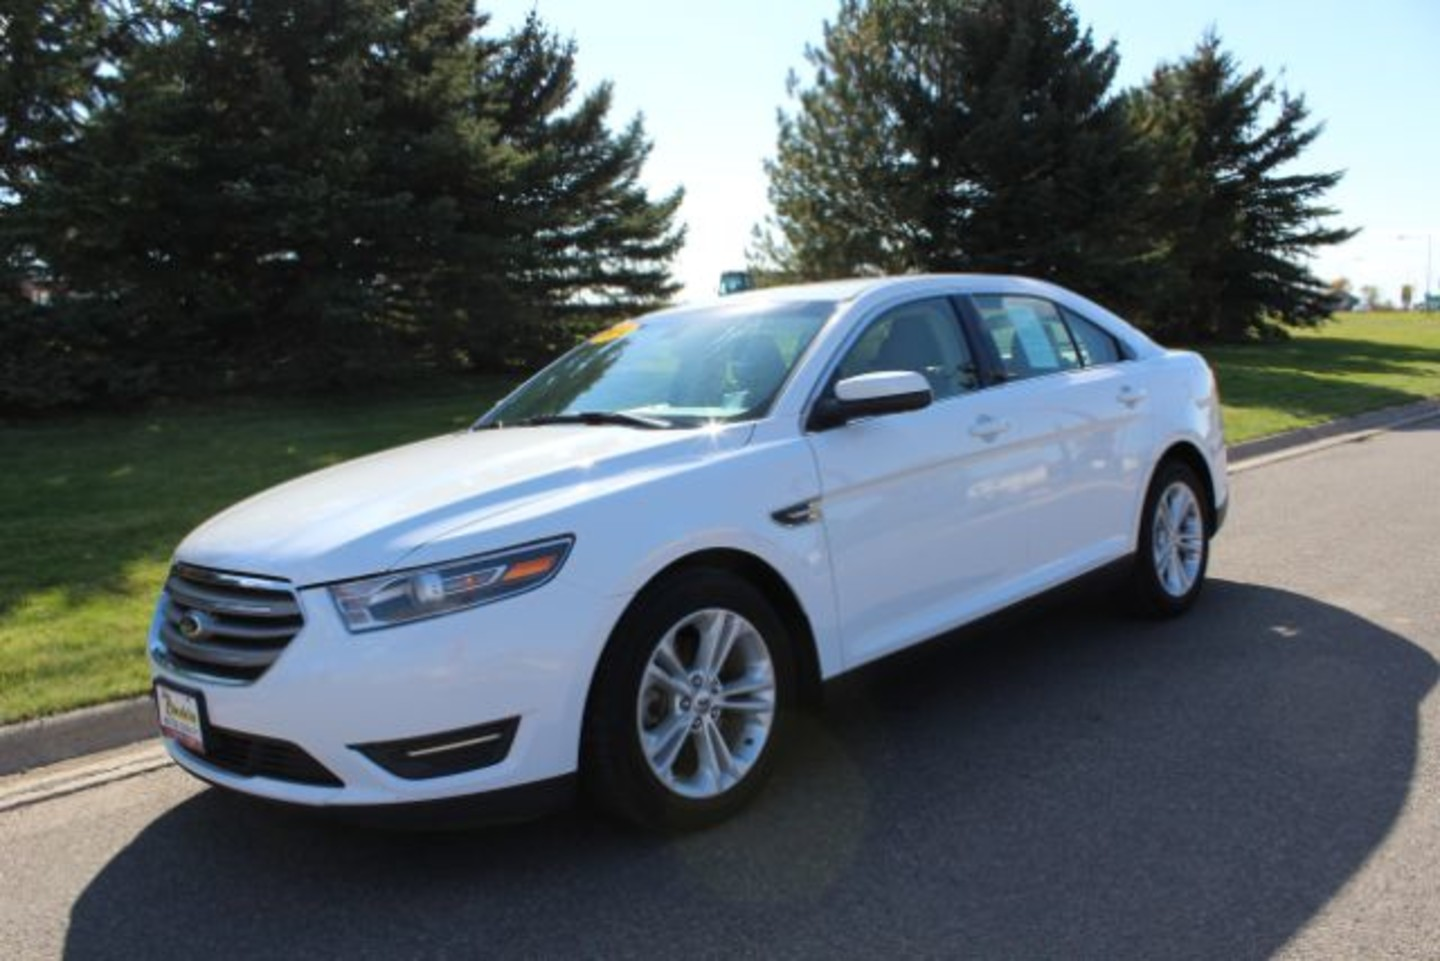 2014 ford taurus sel city mt bleskin motor company for City motor company great falls